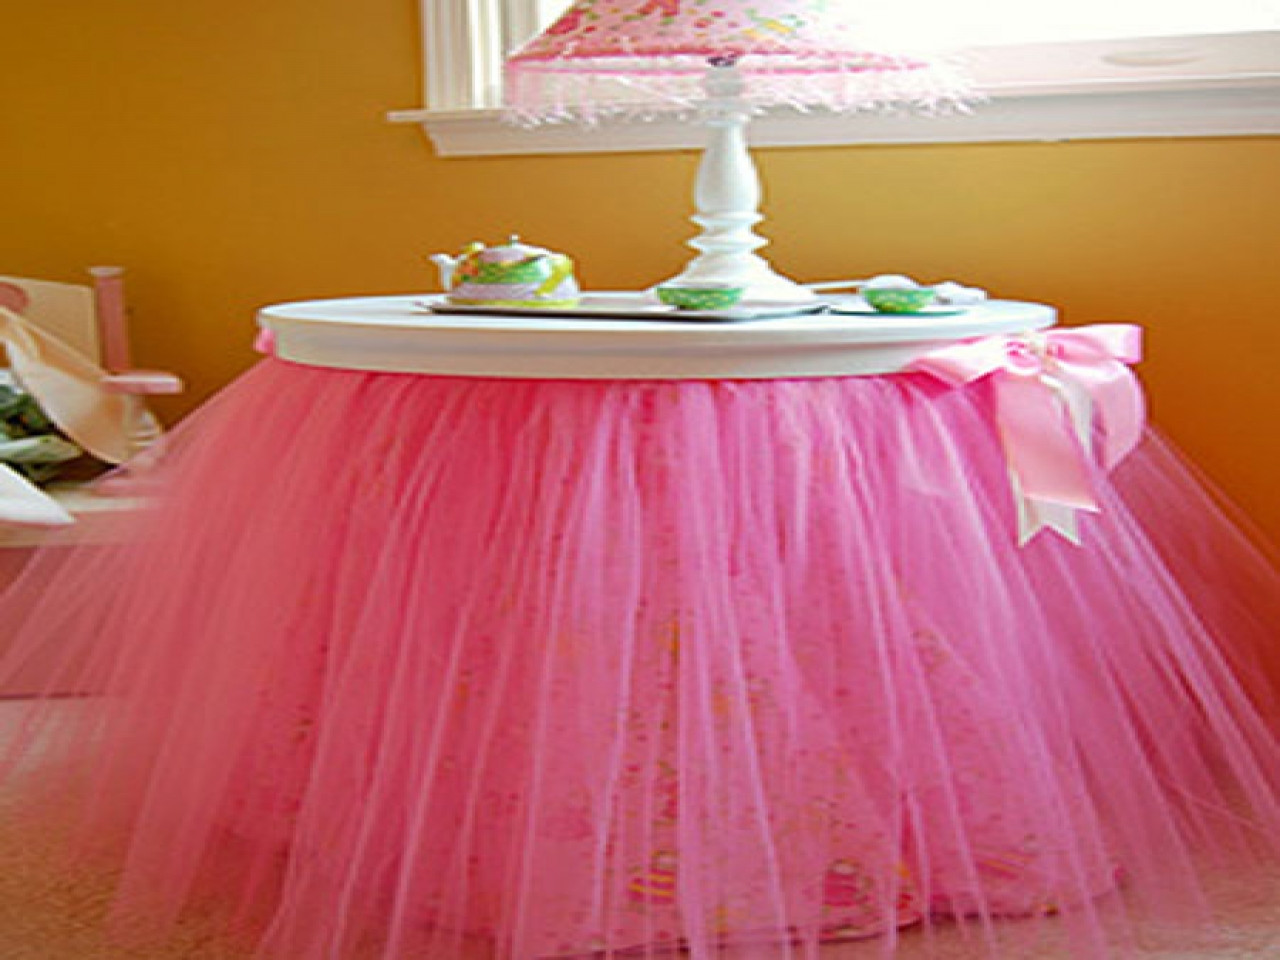 Best ideas about Tulle Table Skirt DIY . Save or Pin Design tips for small spaces tulle table skirt tutorial Now.